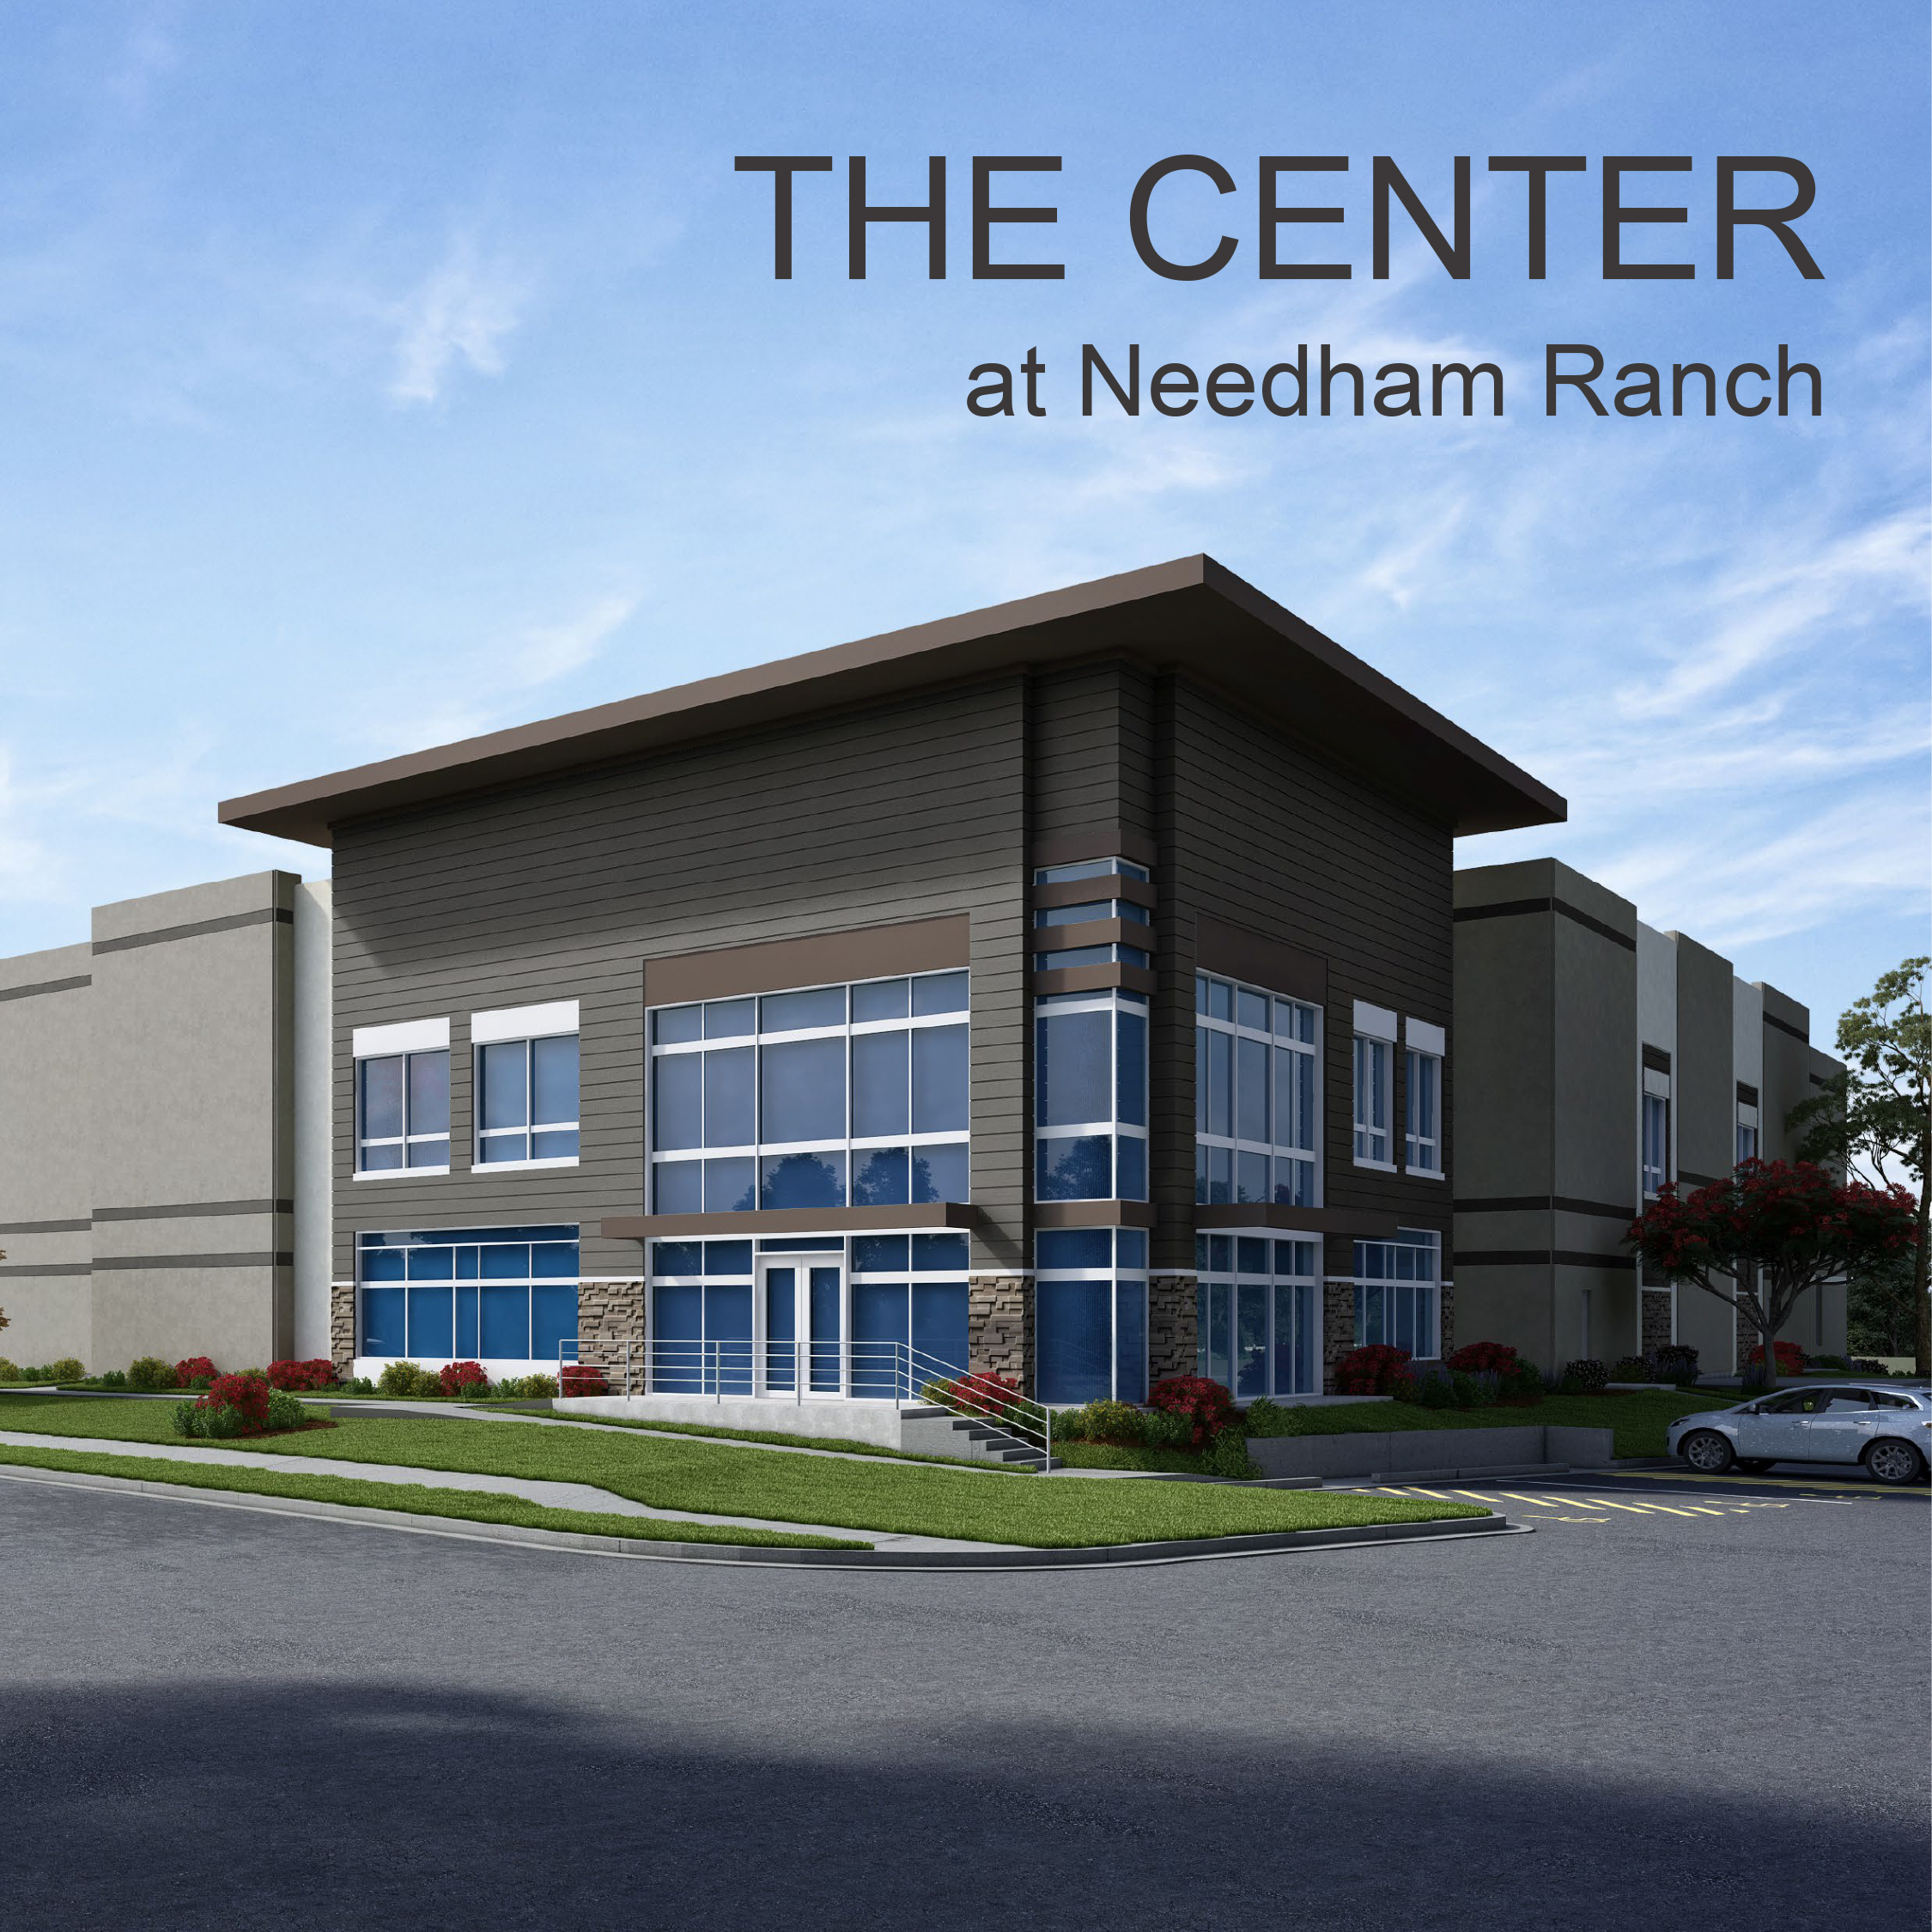 The Center at Needham Ranch